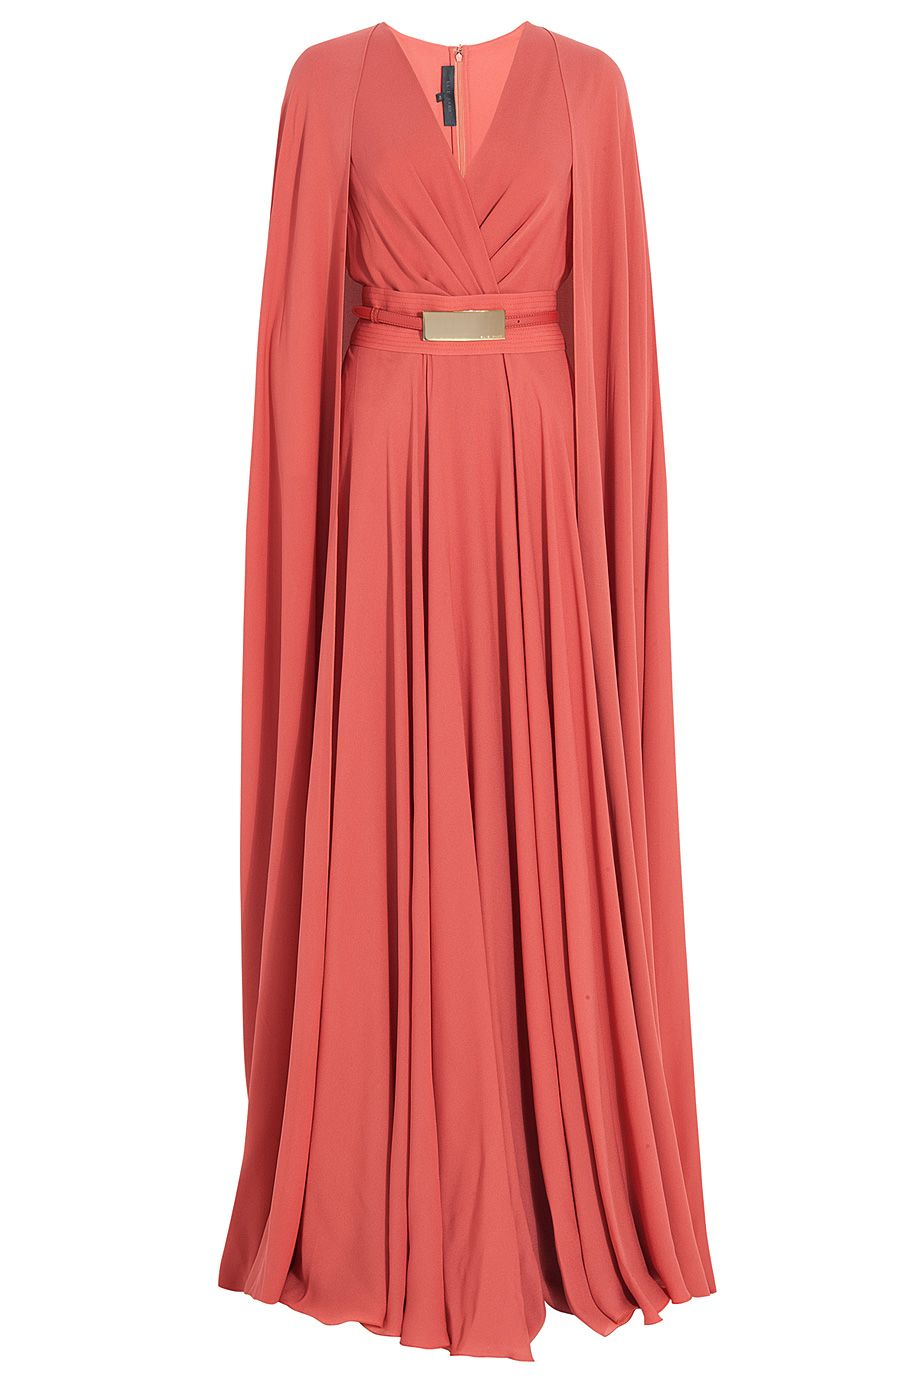 Womenus red long cap detail gown track the oujays and red